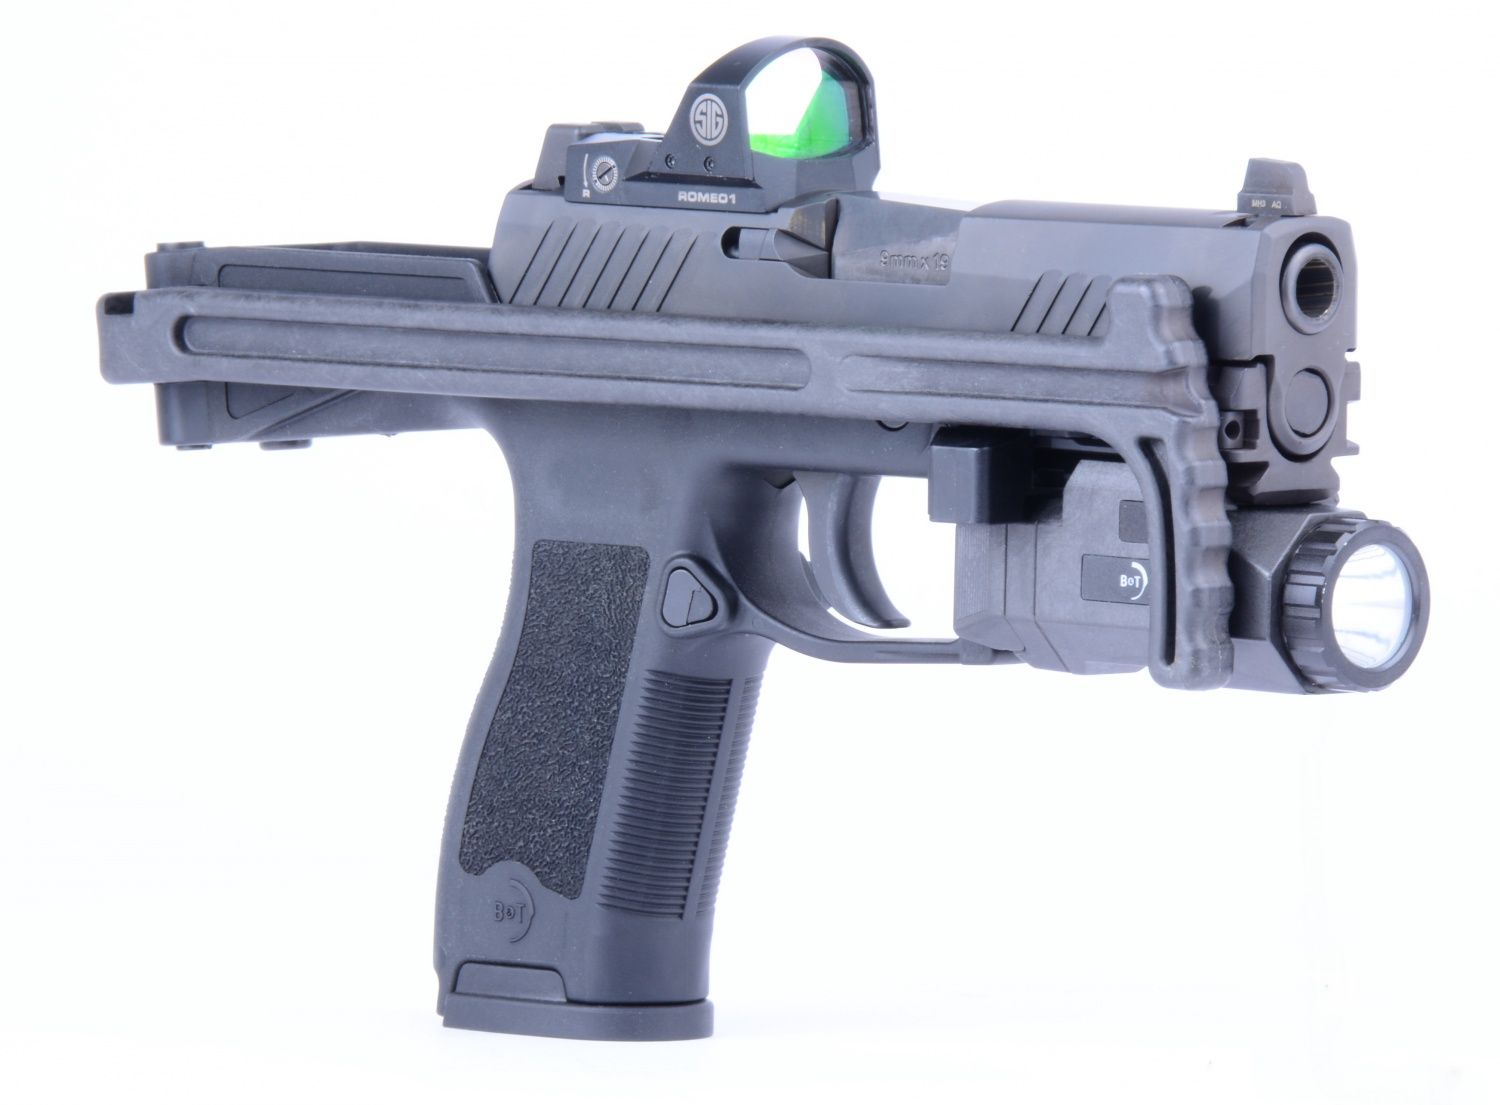 B&T USW320 Universal Service Weapon Upgrade for SIG Sauer P320 -The